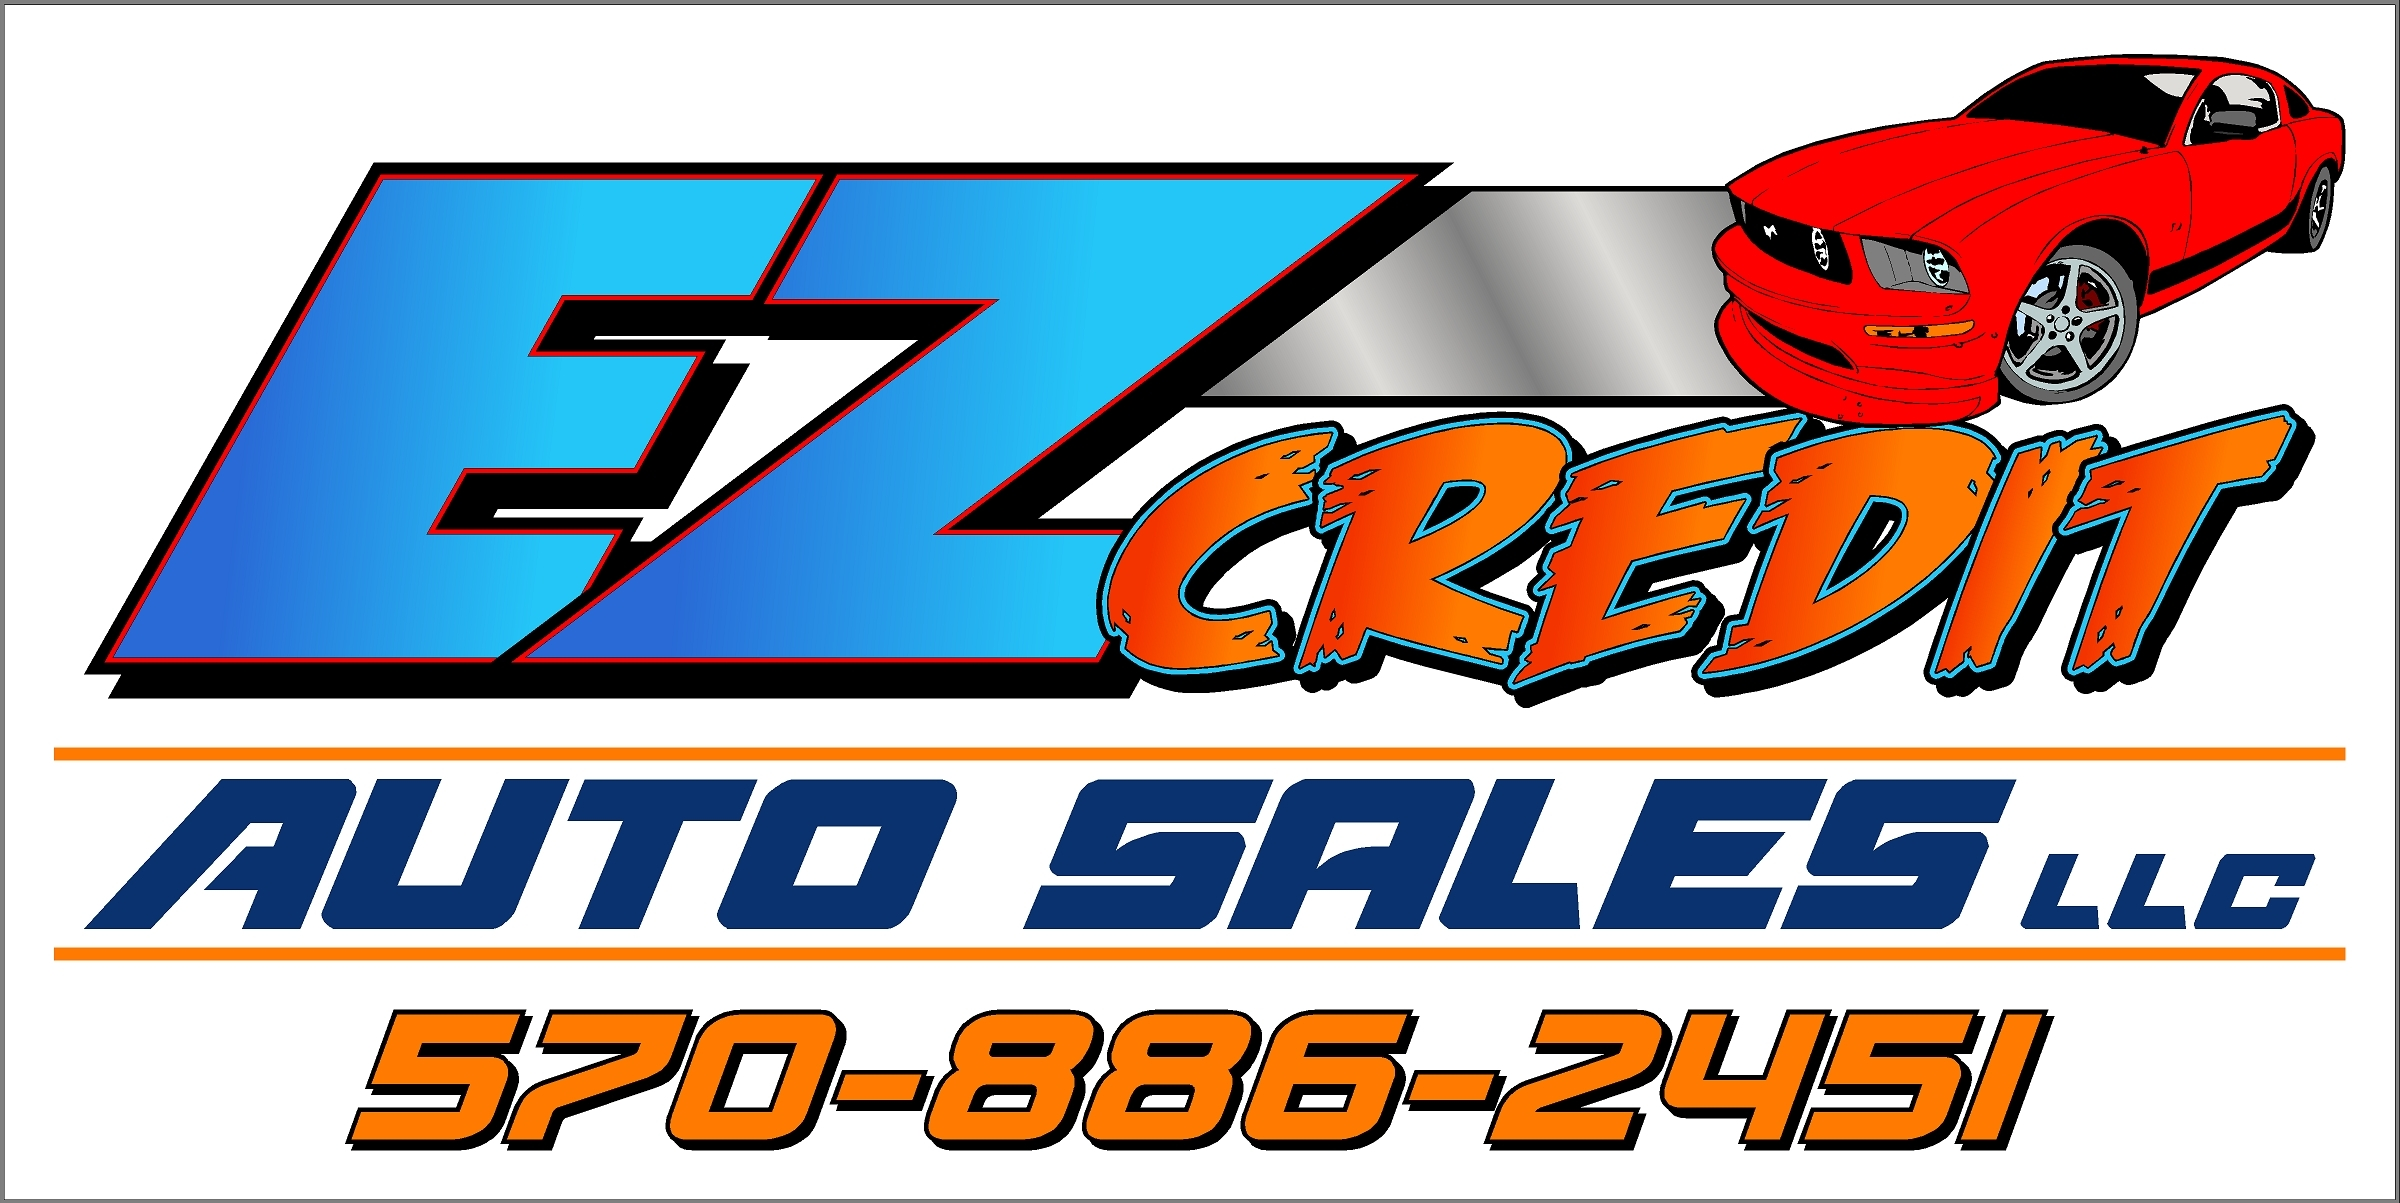 EZ CREDIT AUTO SALES LLC Driving Directions